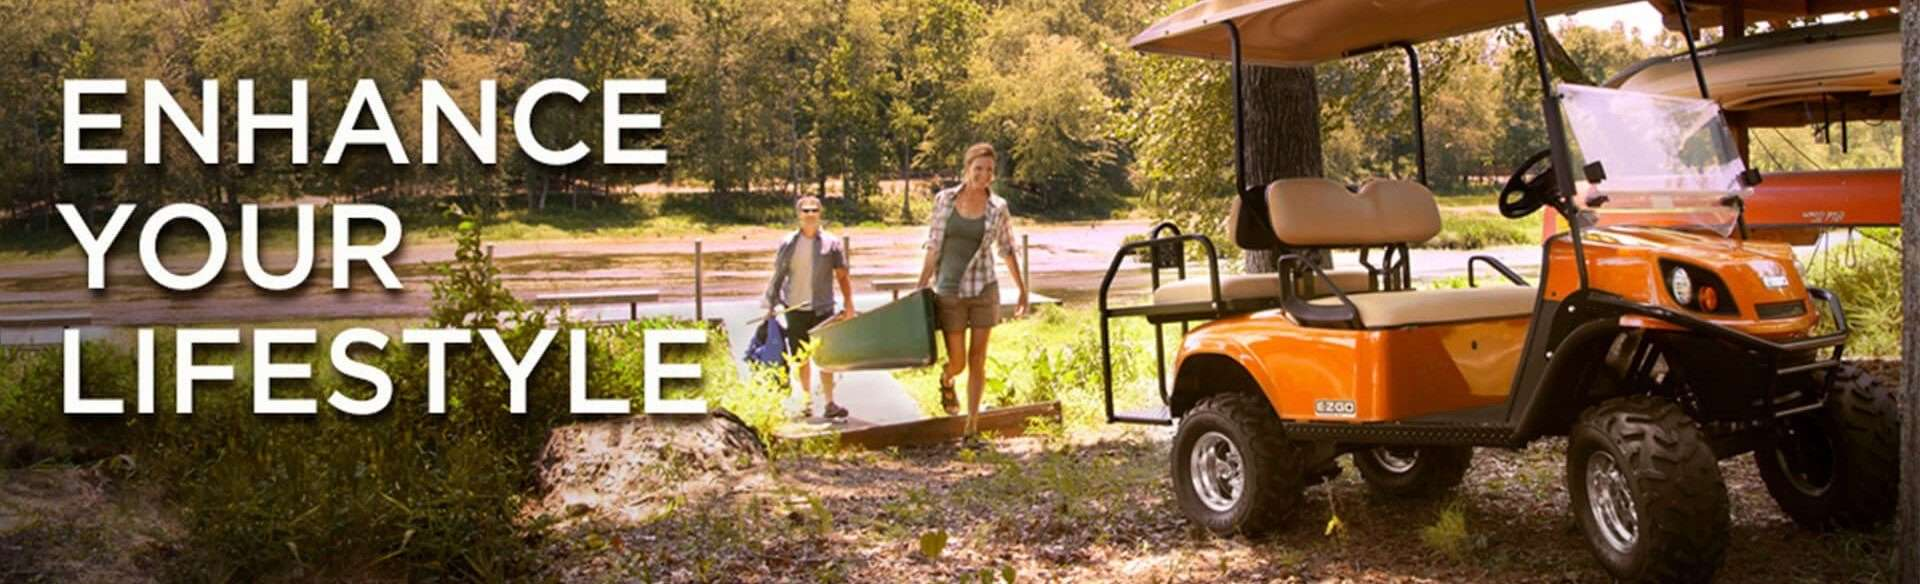 Golf Cart Services is located in New Oxford, PA | Shop our